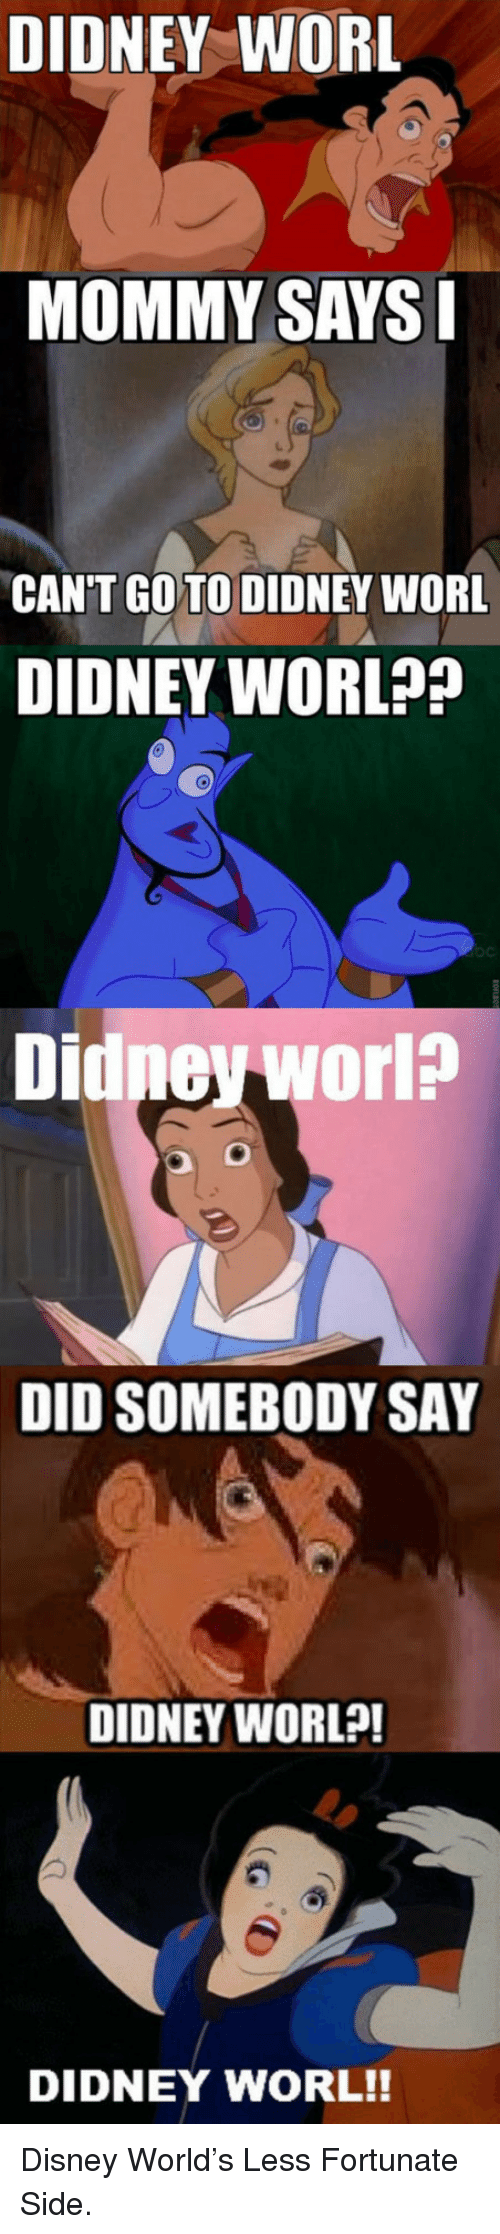 Less Fortunate: DIDNEY WORL  MOMMY SAYSI  CAN'T GOTO DIDNEY WORL  DIDNEY WORL??  Didneyworl?  DID SOMEBODY SAY  DIDNEY WORL?!  DIDNEY WORL!! <p>Disney World's Less Fortunate Side.</p>